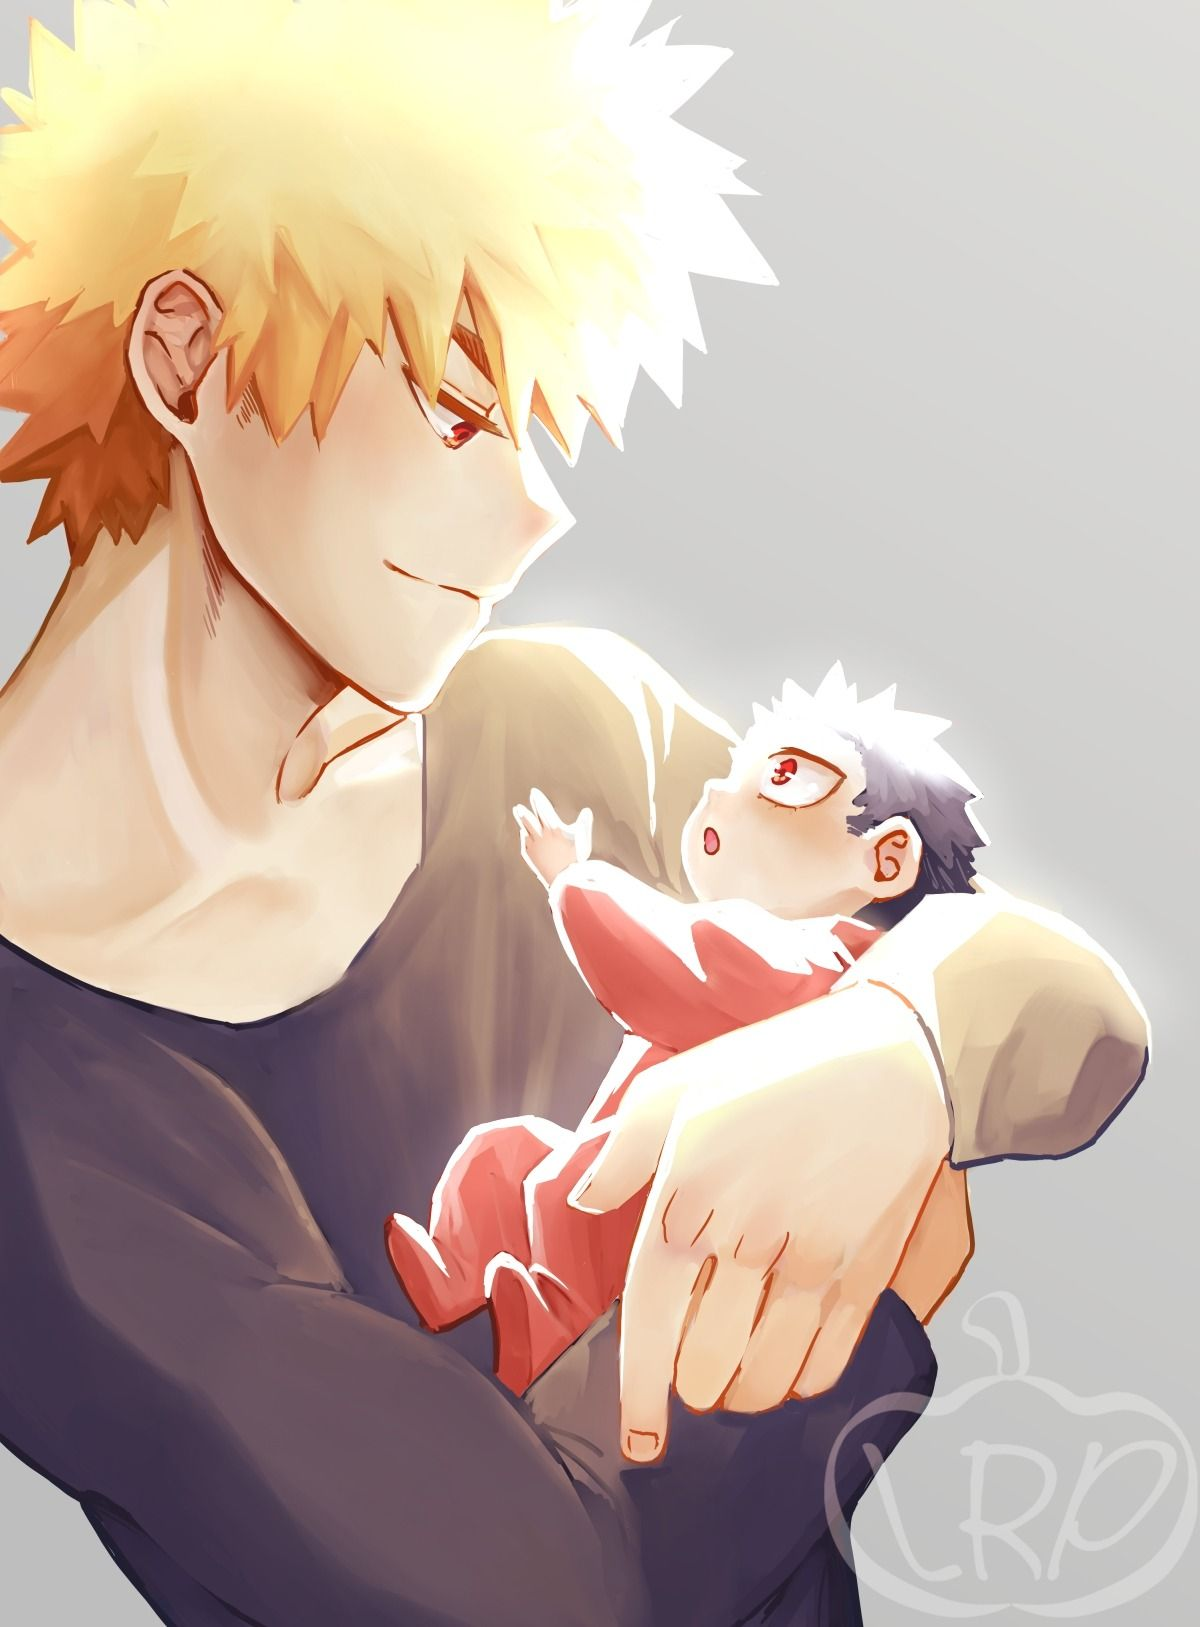 I'm stuck in a loop of wholesome bakumomo babies  I'm finally